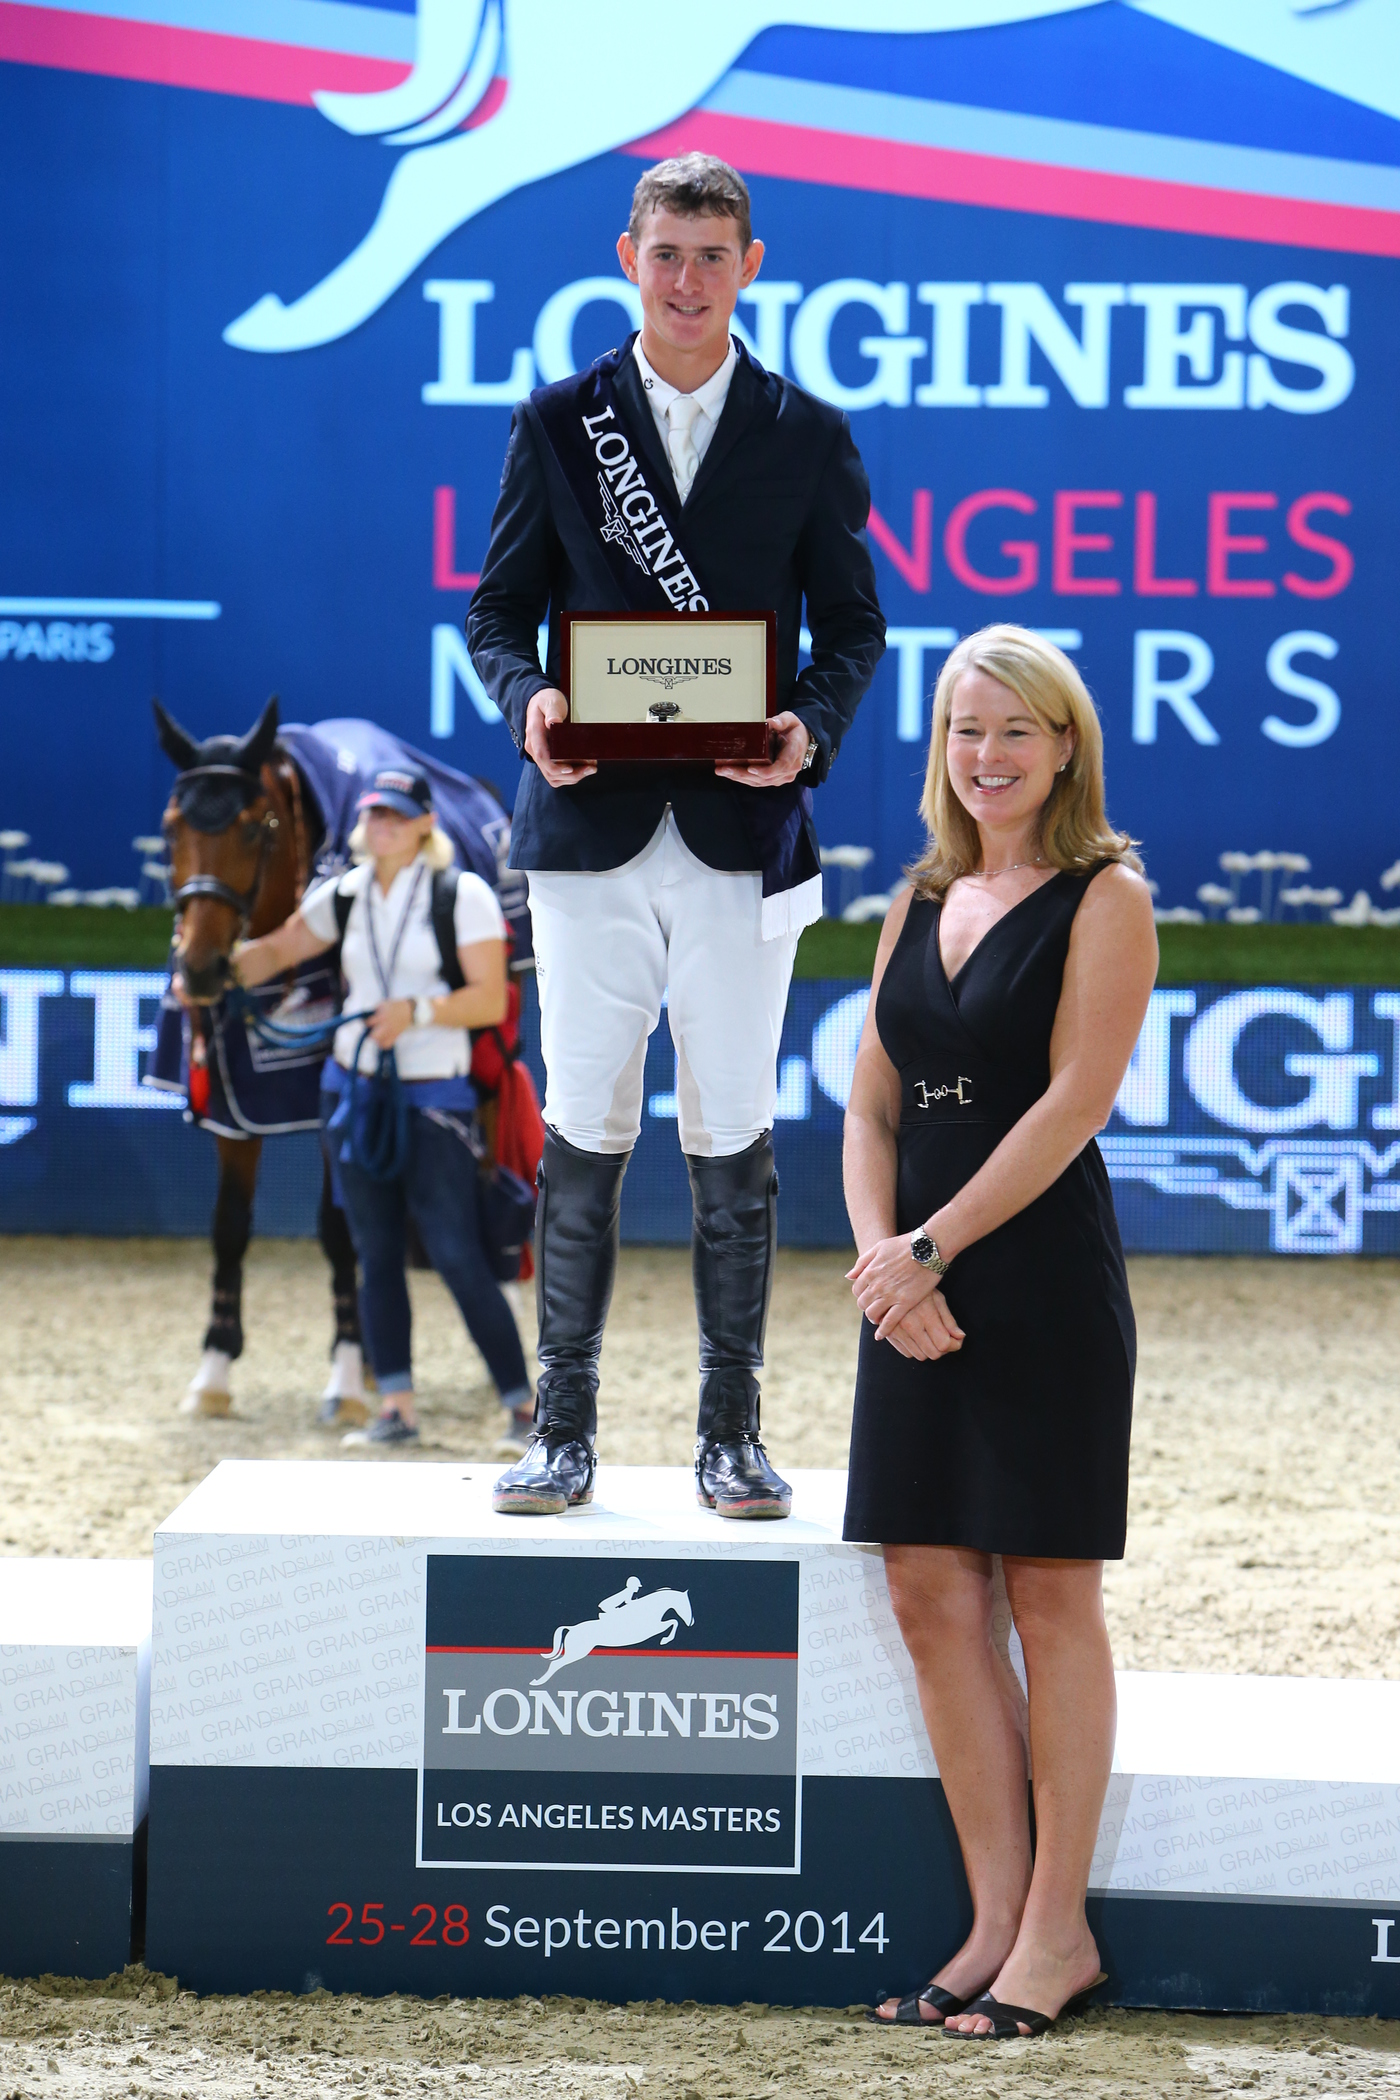 Longines Show Jumping Event: The first Longines Los Angeles Masters (Los Angeles Masters, UNITED STATES (THE))  9